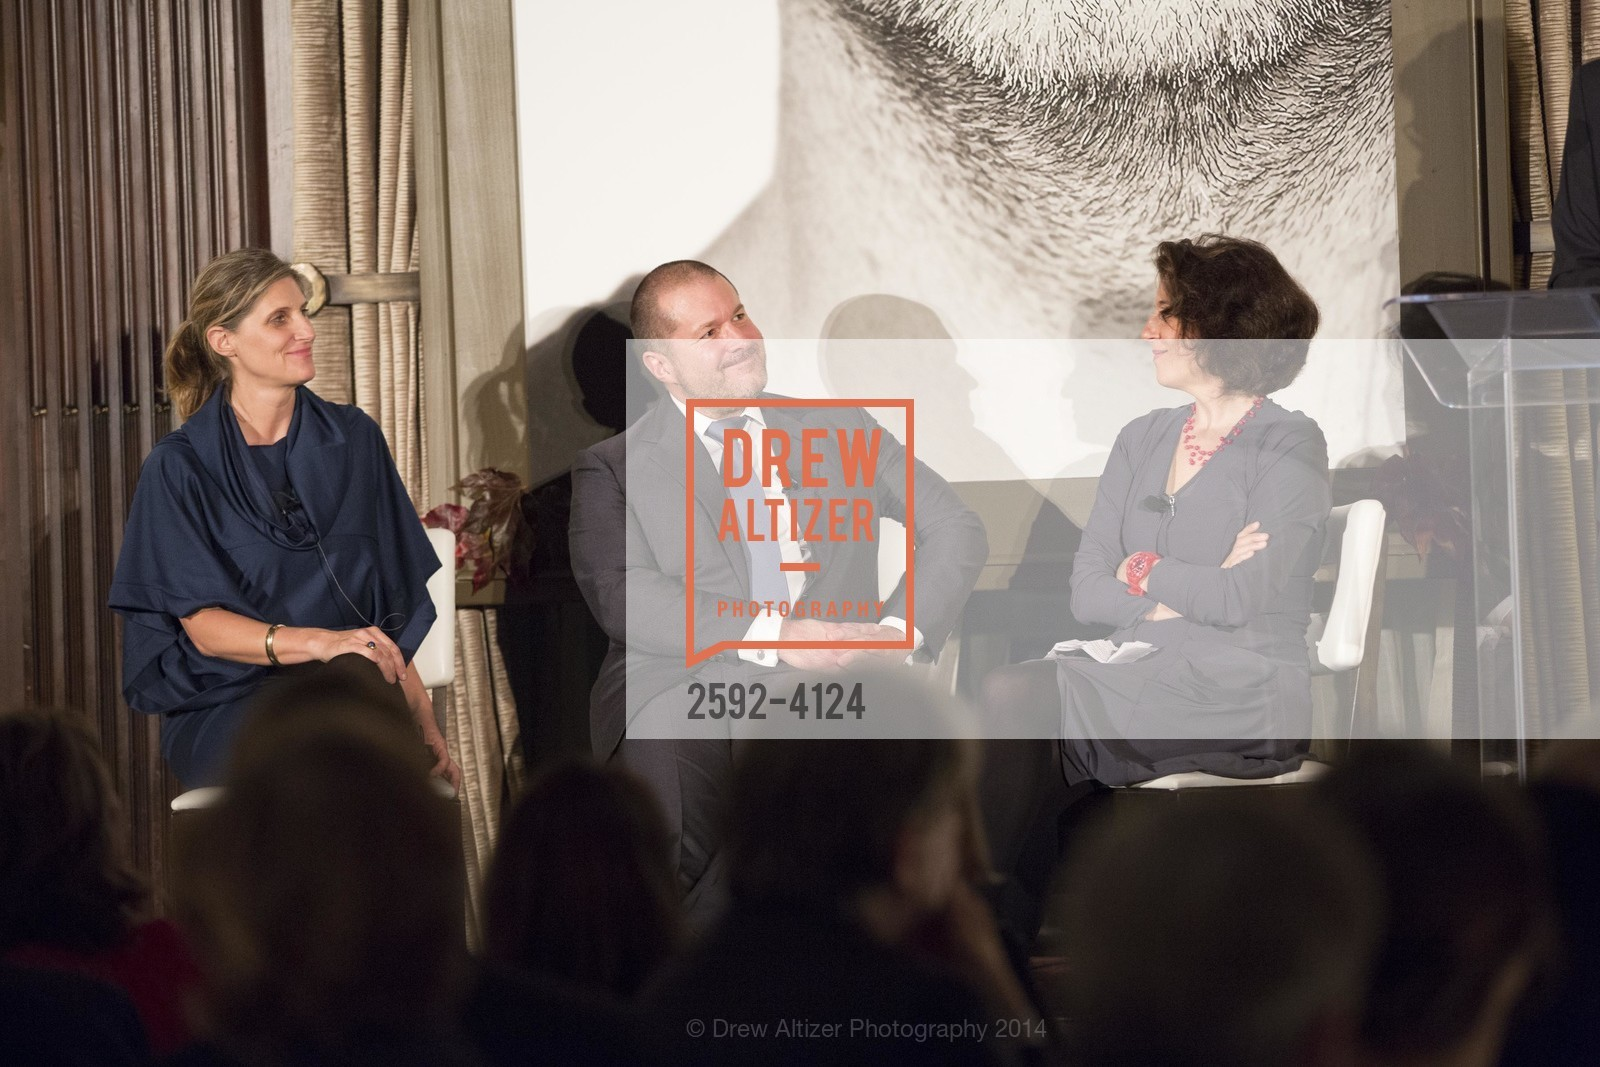 Jennifer Dunlop Fletcher, Jony Ive, Frances Anderton, Photo #2592-4124